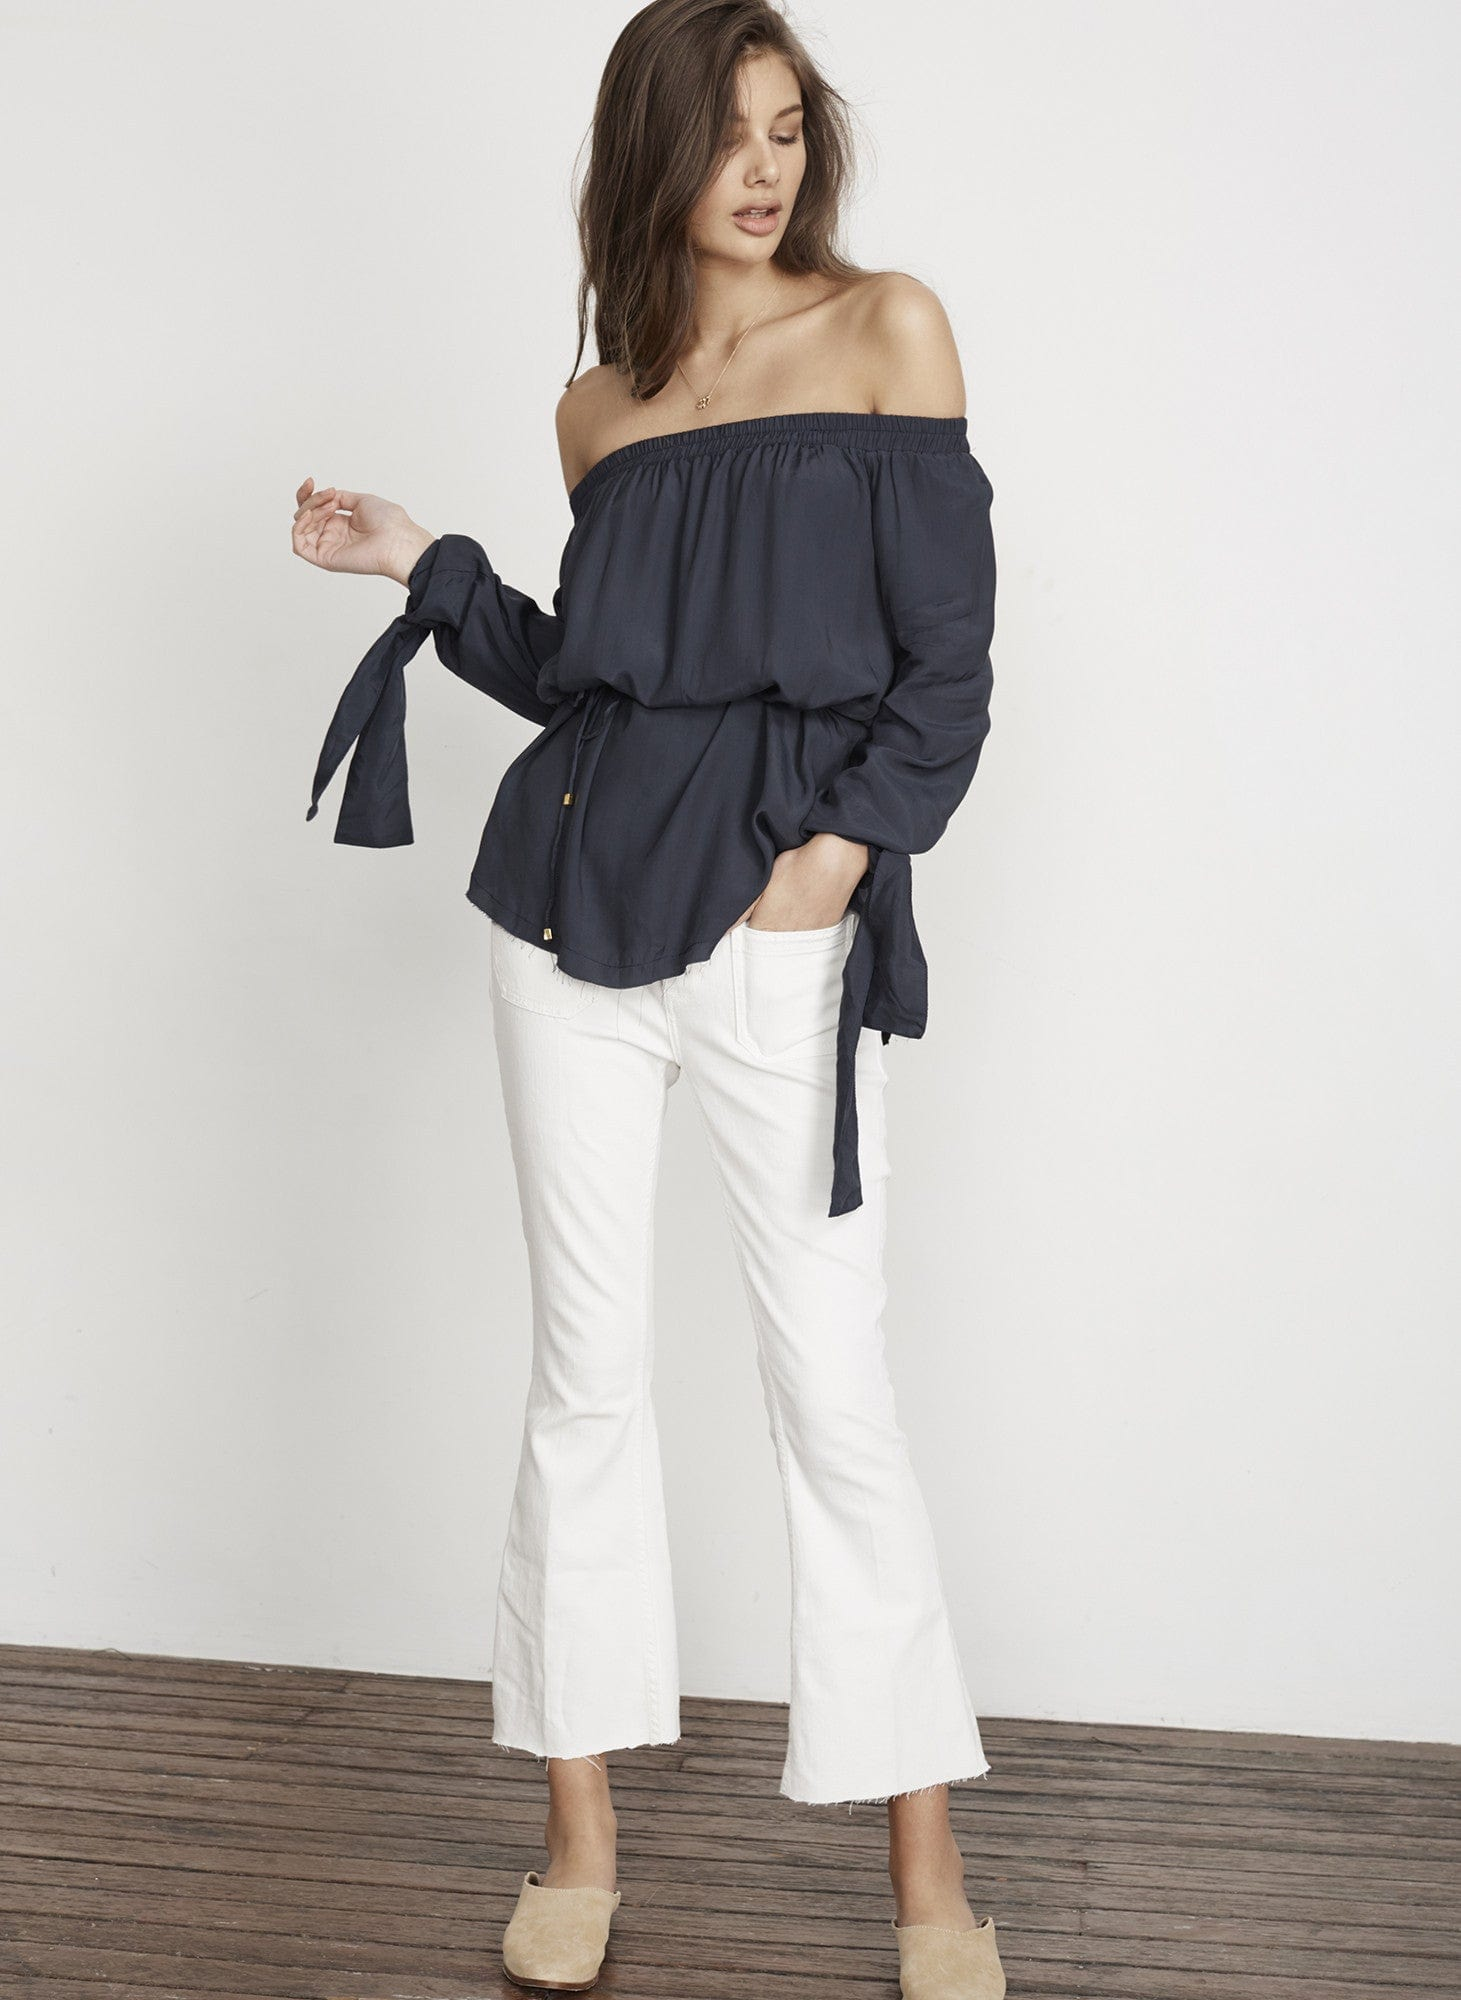 PLAIN DUSK NAVY - POLONIA TOP - FINAL SALE